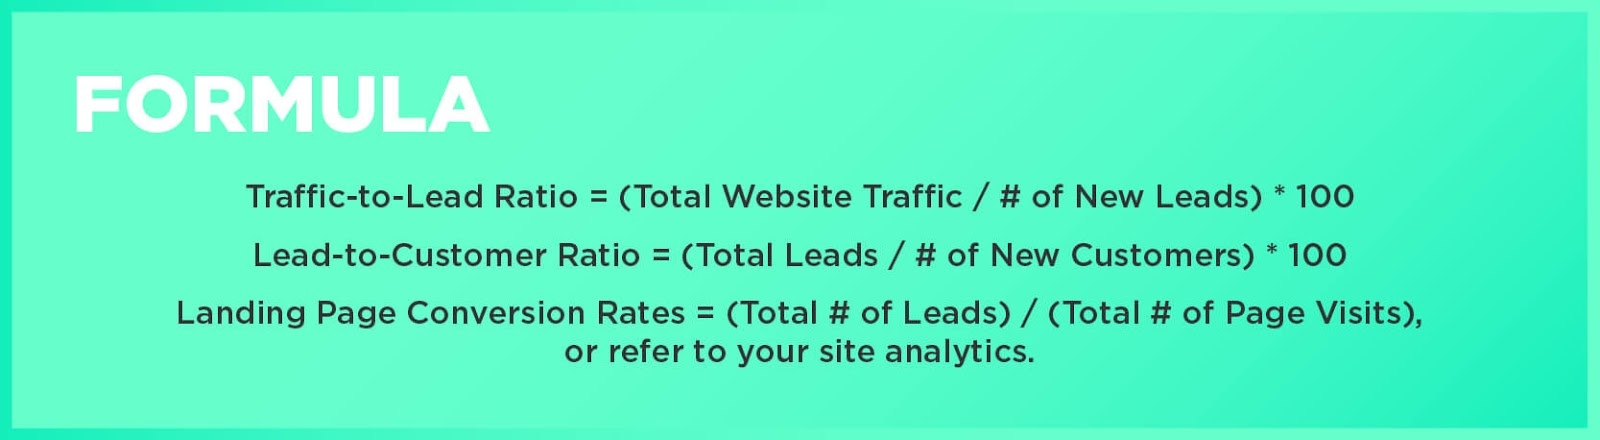 Formulas: Traffic-to-Lead Ratio = (Total Website Traffic / # of New Leads) * 100Lead-to-Customer Ratio = (Total Leads / # of New Customers) * 100Landing Page Conversion Rates = (Total # of Leads) / (Total # of Page Visits), or refer to your site analytics.